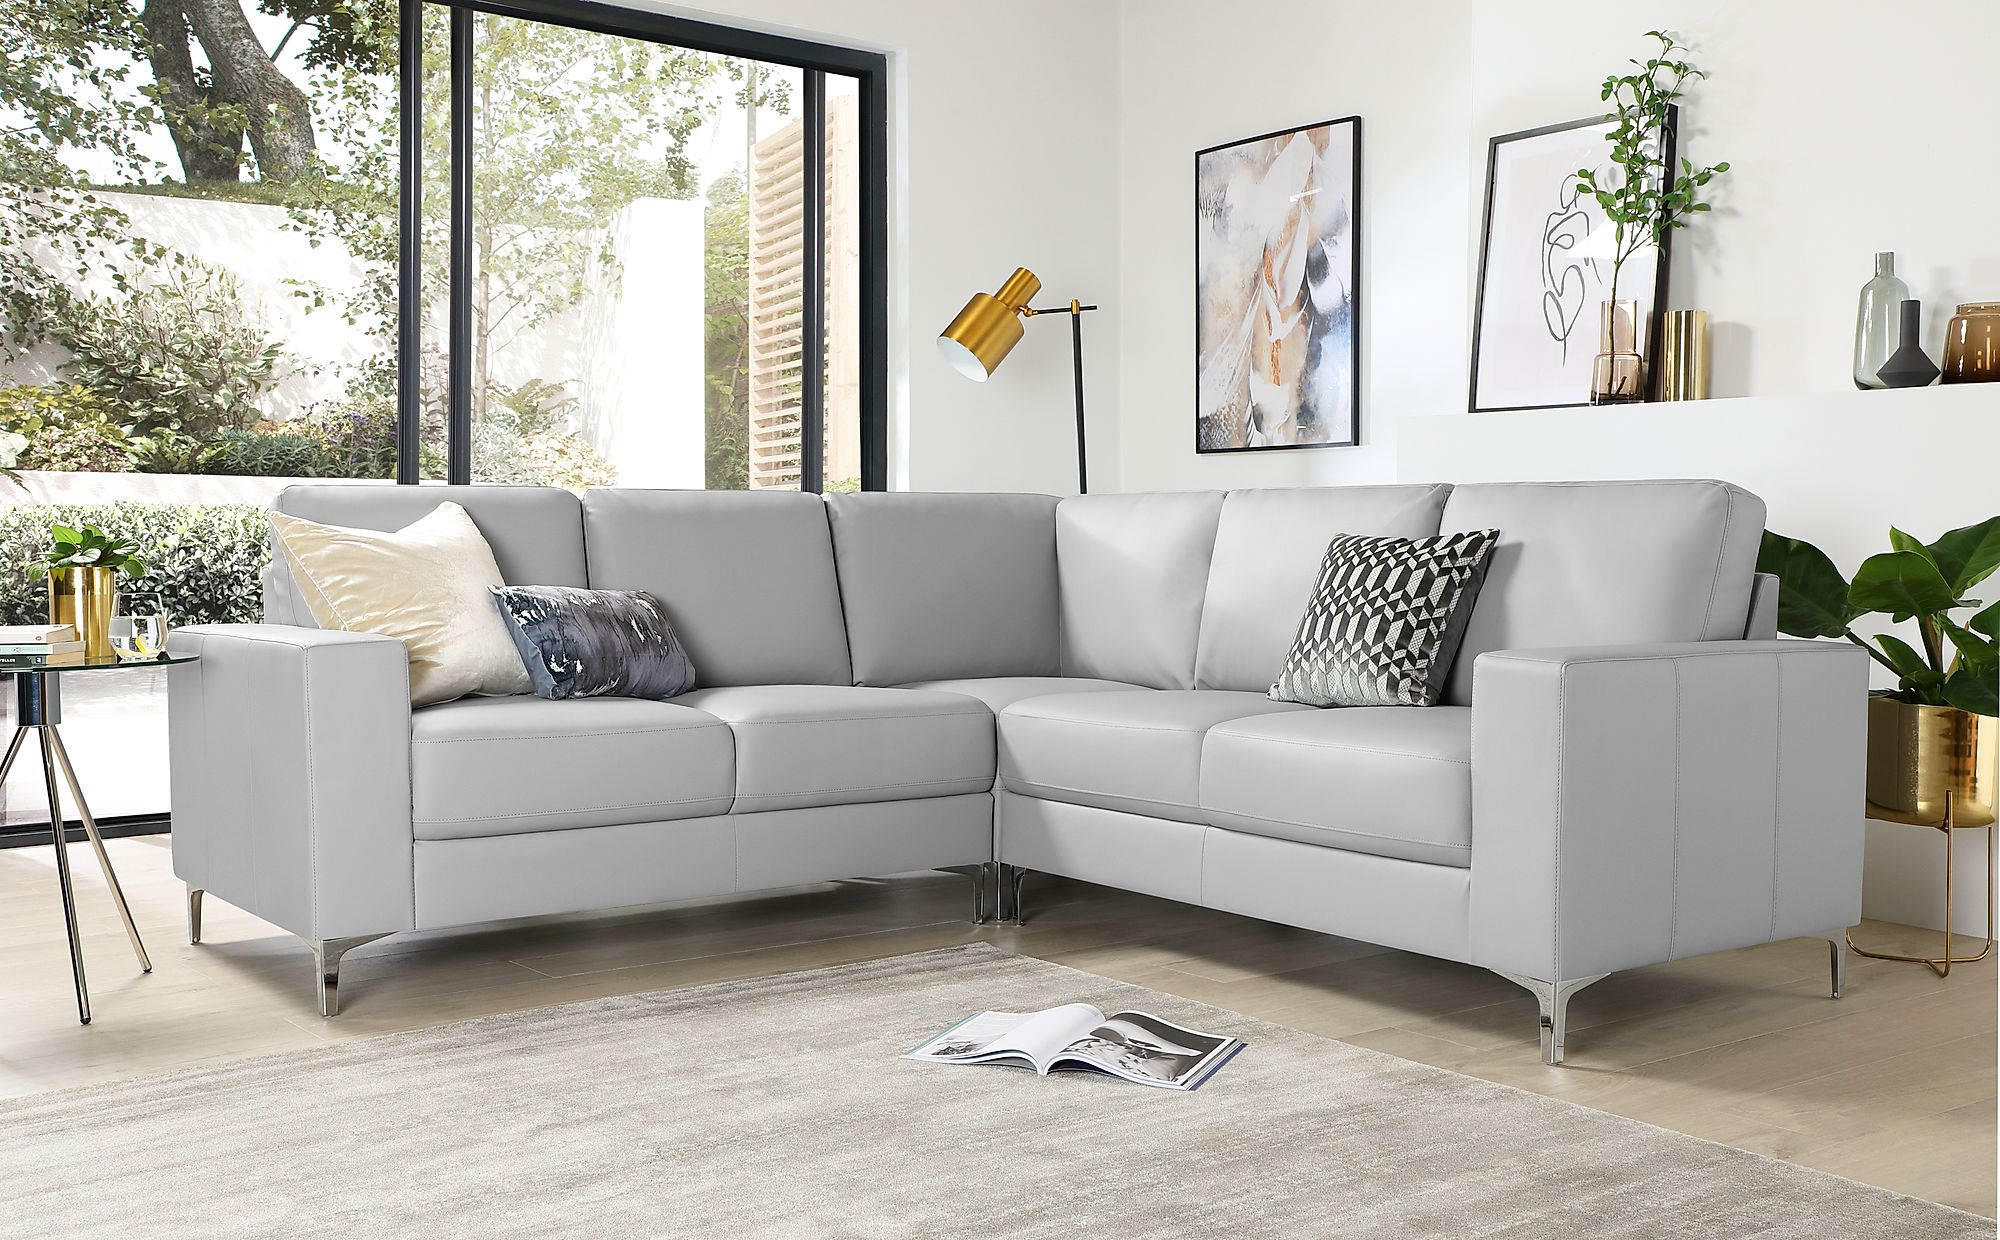 Baltimore Light Grey Leather Corner Sofa Furniture Choice